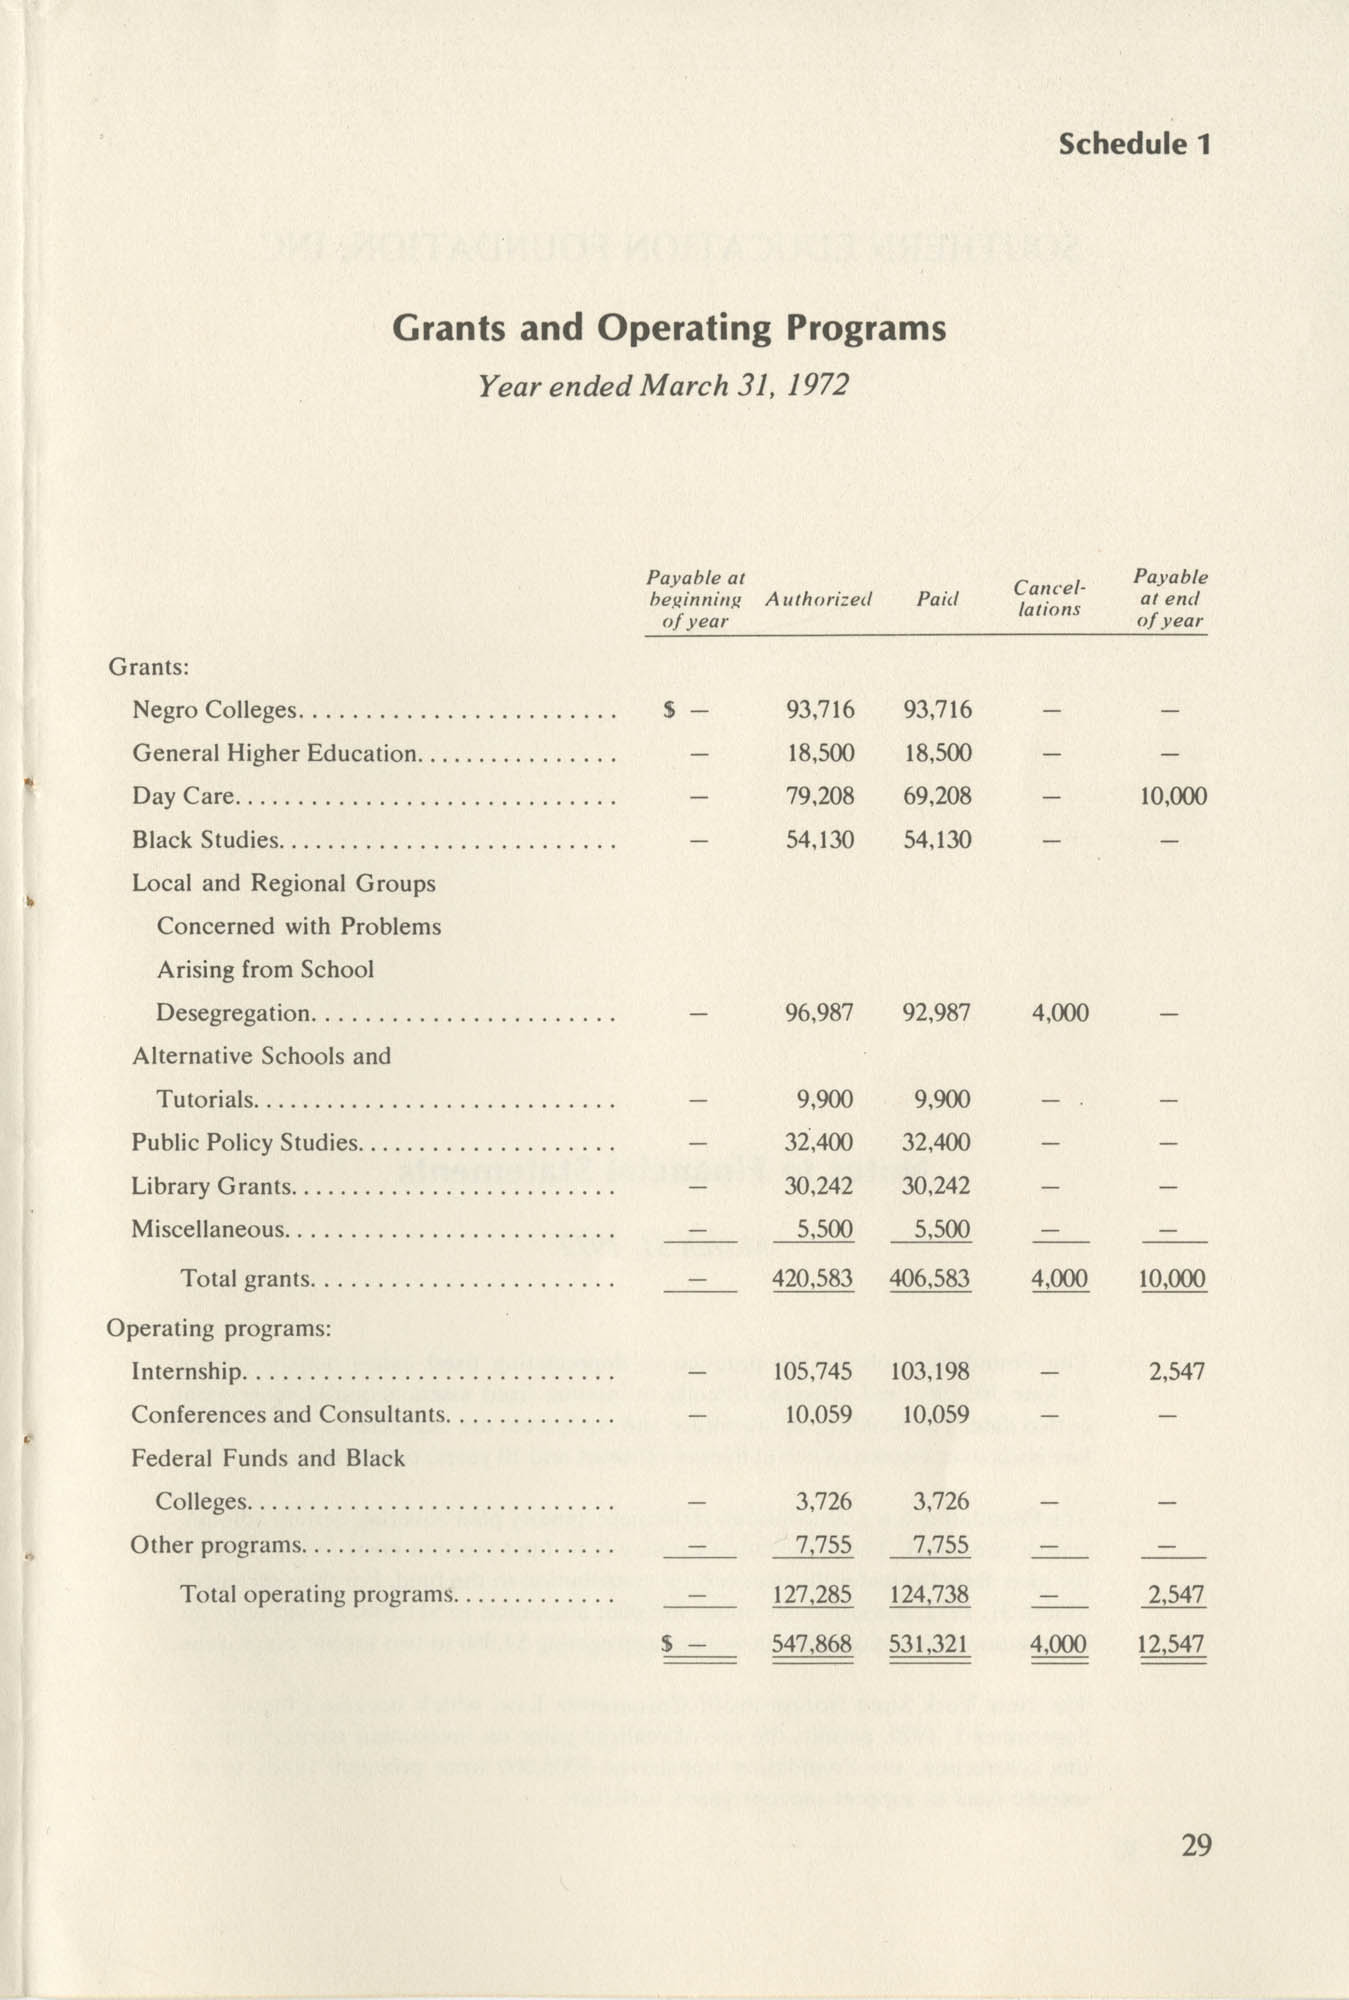 Southern Education Foundation, Annual Report 1971-1972, Page 29